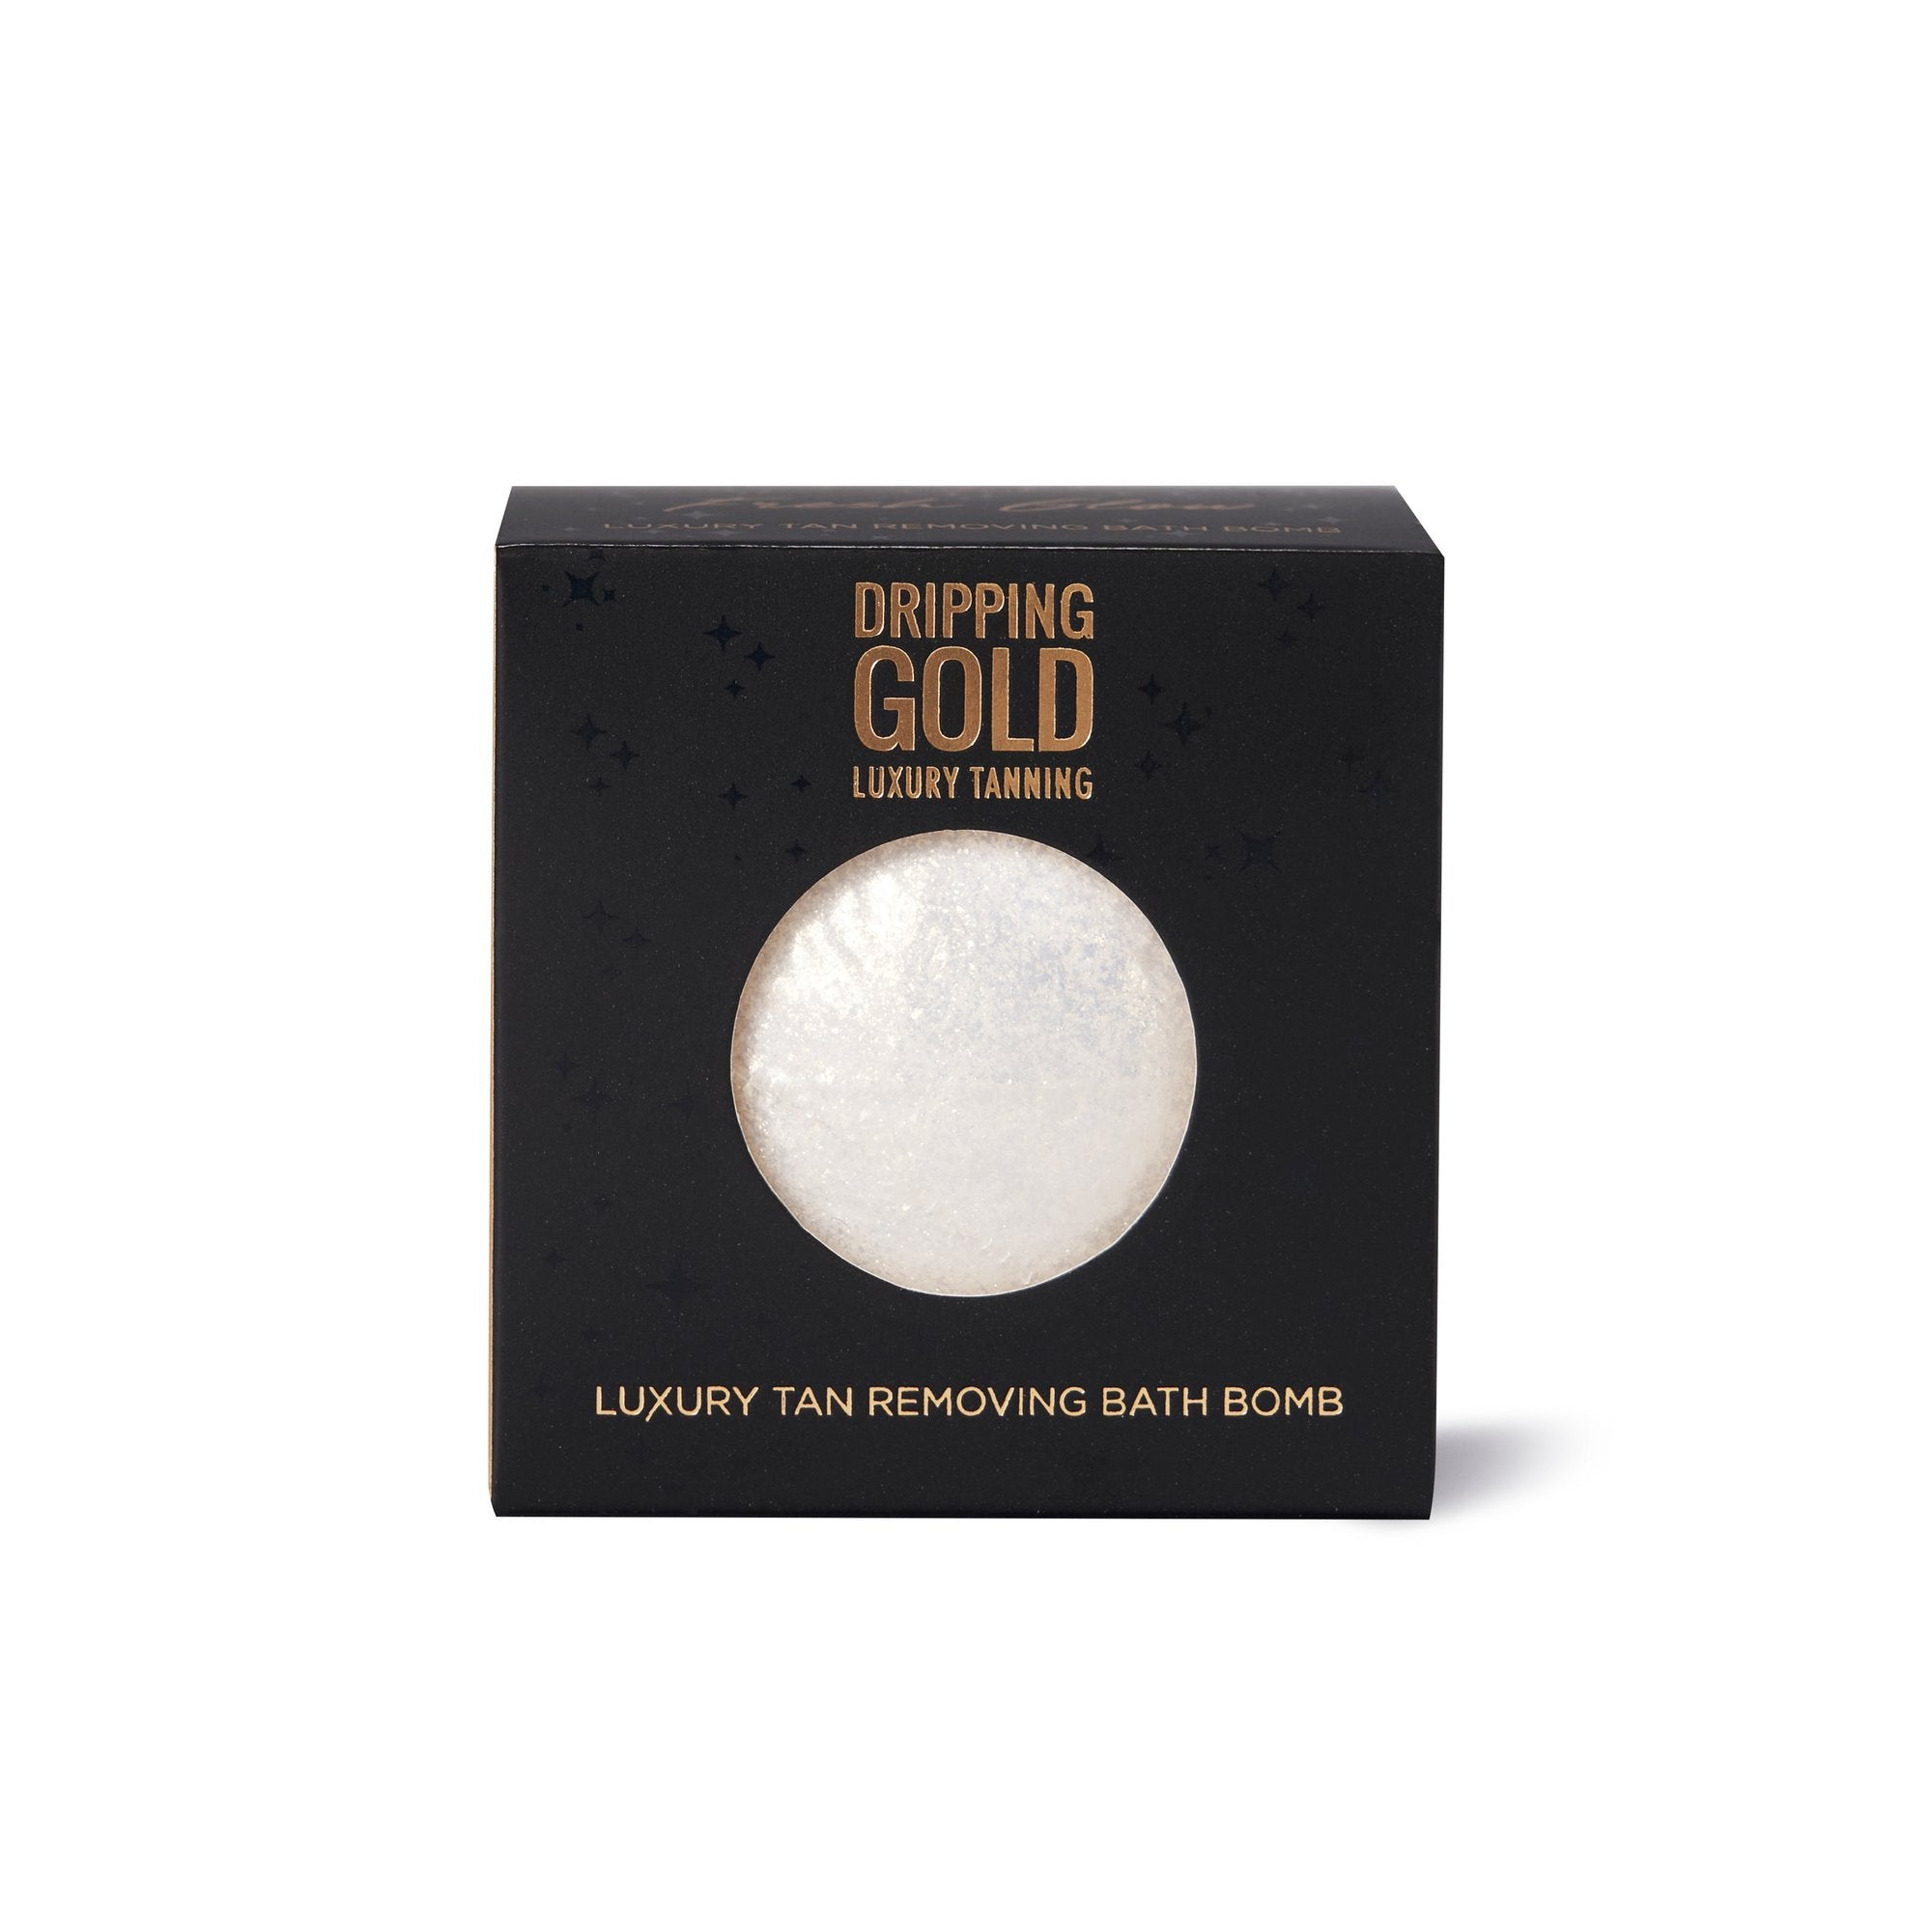 SoSu Fresh Glow Luxury Tan Removing Bath Bomb